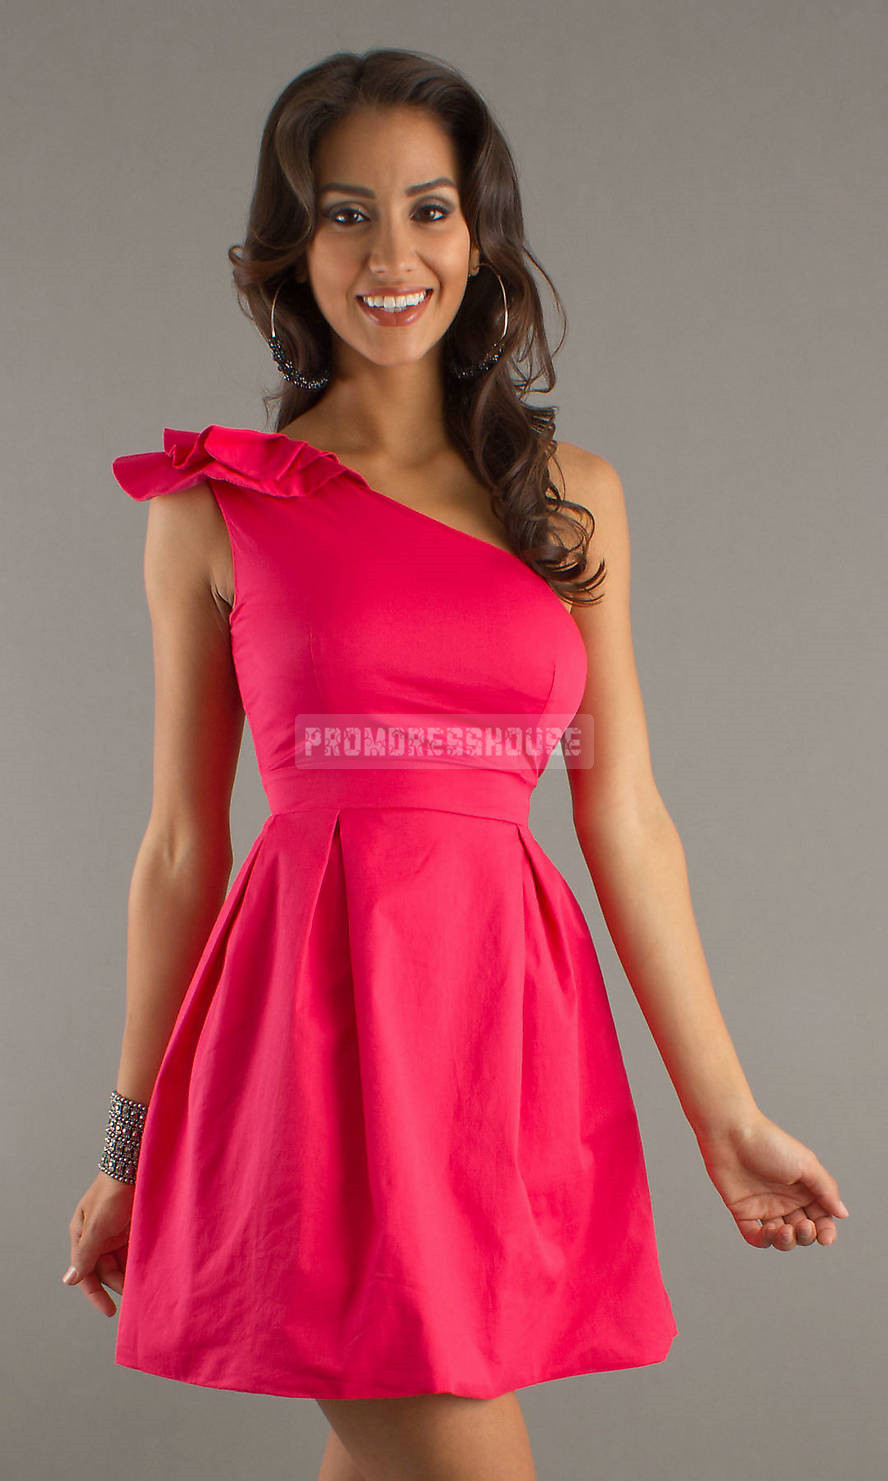 One Shoulder Sleeveless Short Length Taffeta Fuchsia Cocktail Dress - Promdresshouse.com